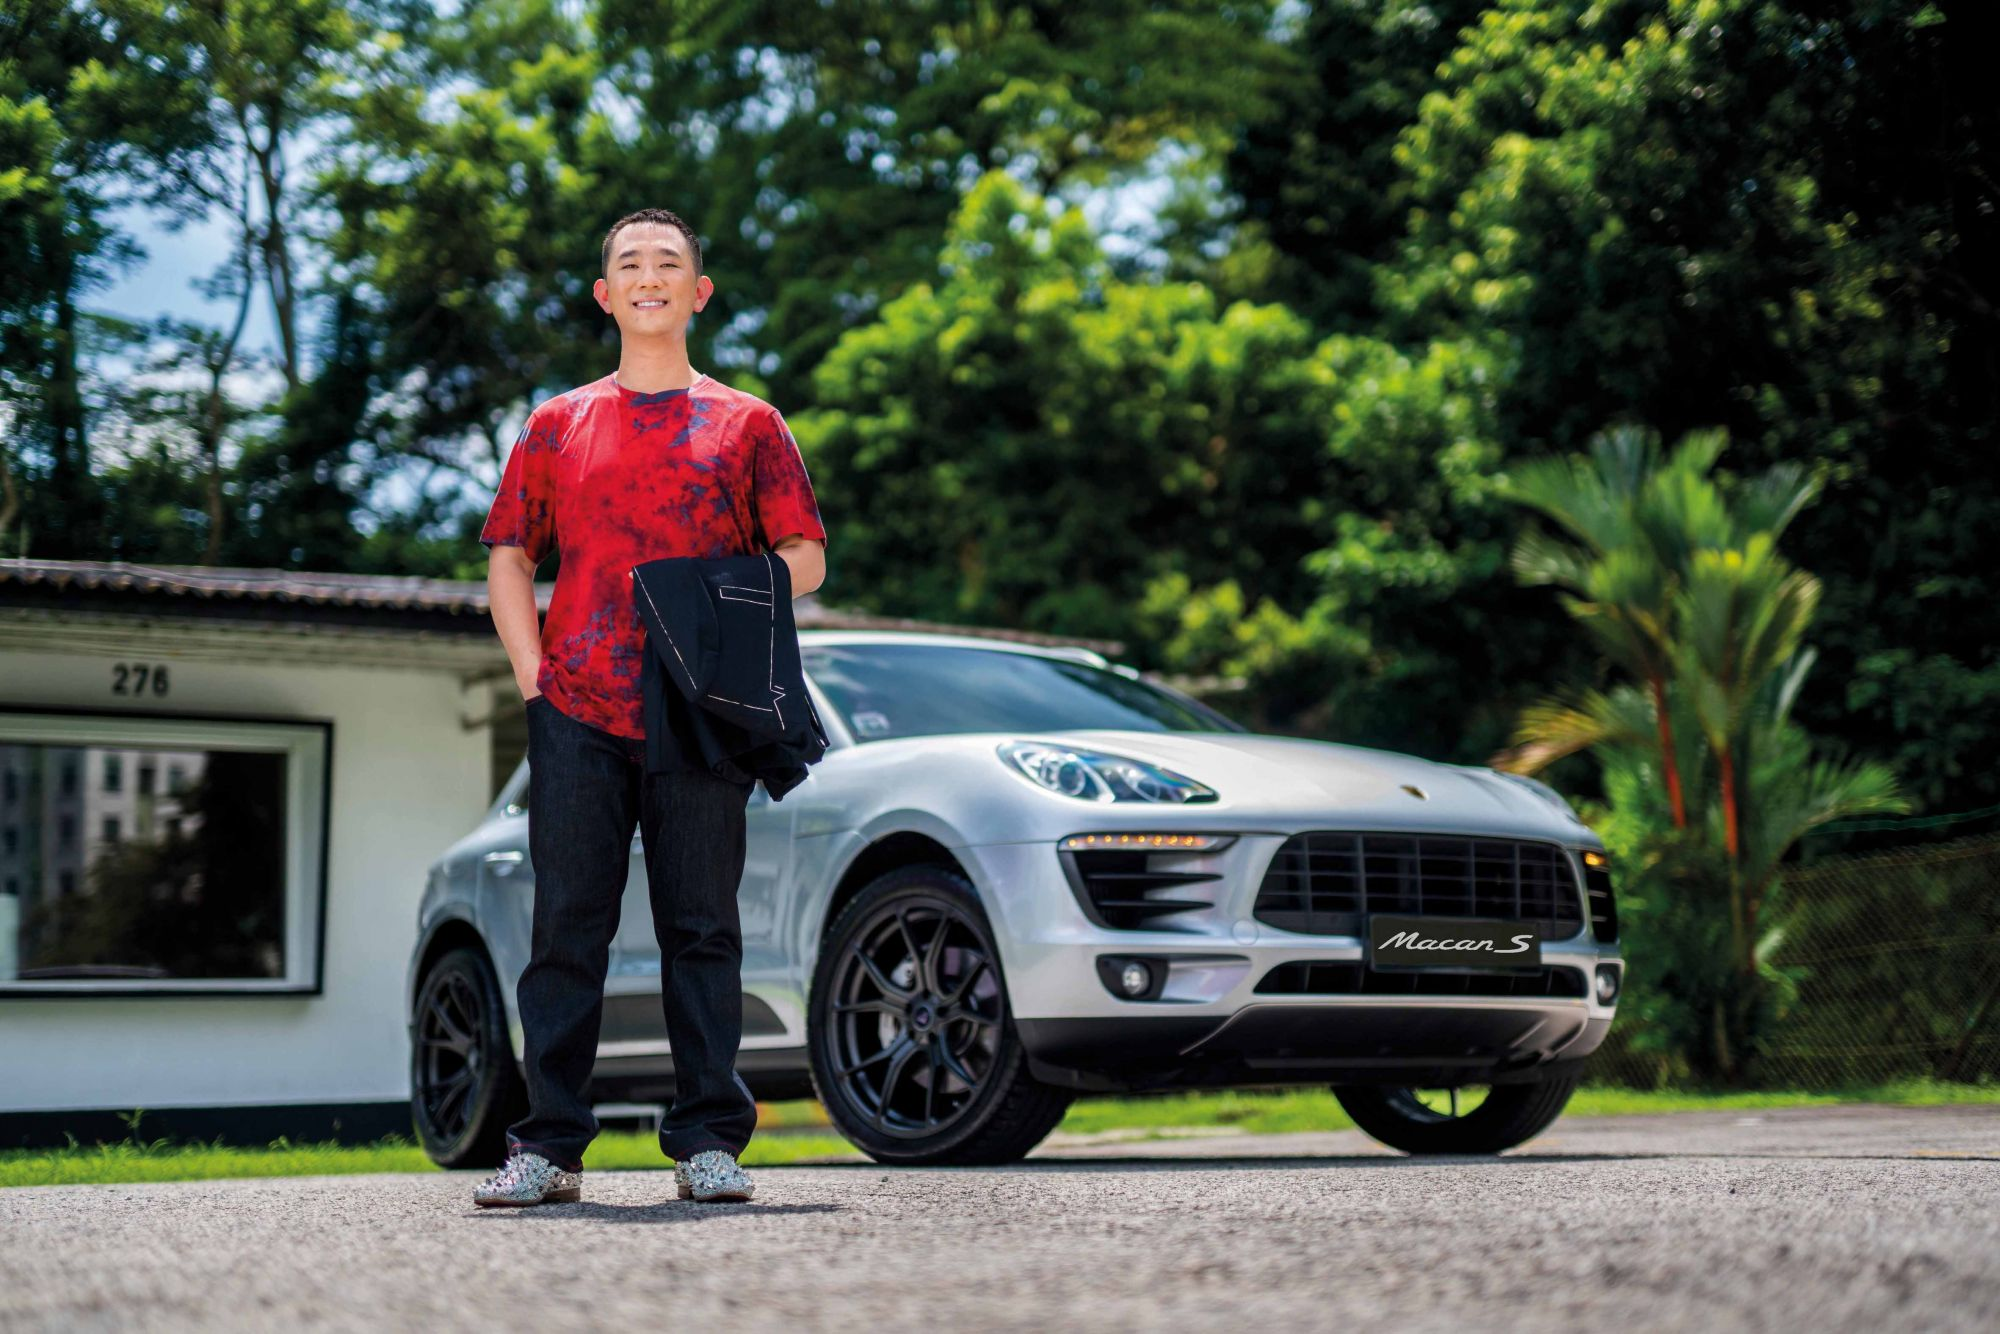 Why The Porsche Macan S Is A Great Sports Car For Families